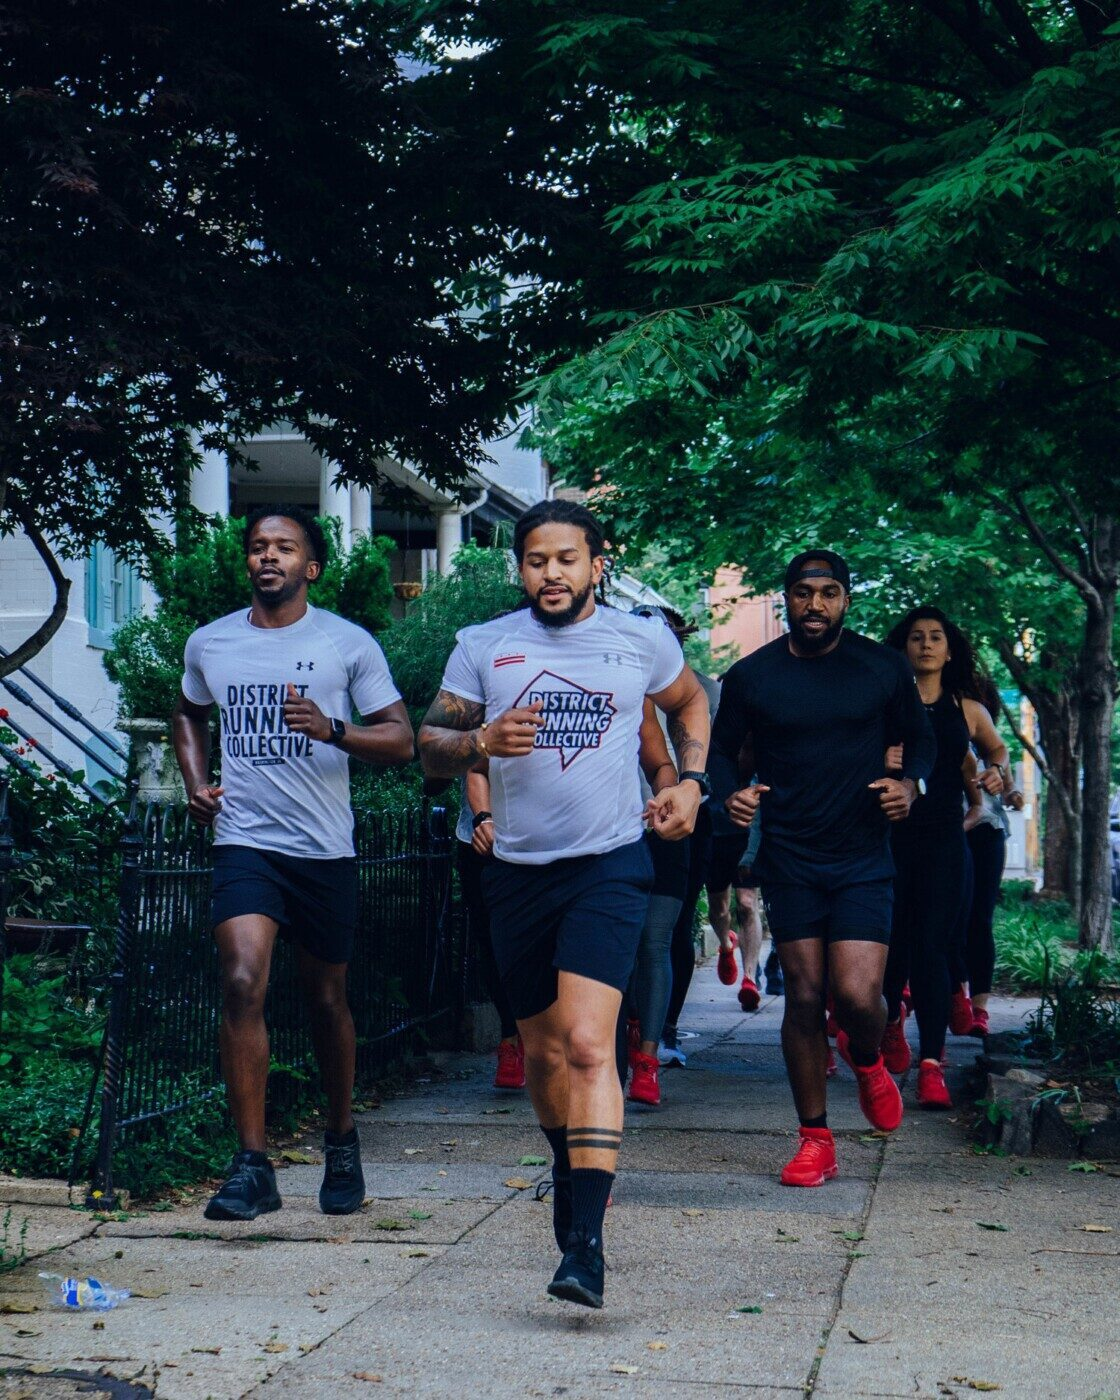 The District Running Collective: We Talk With Founder Matt Green